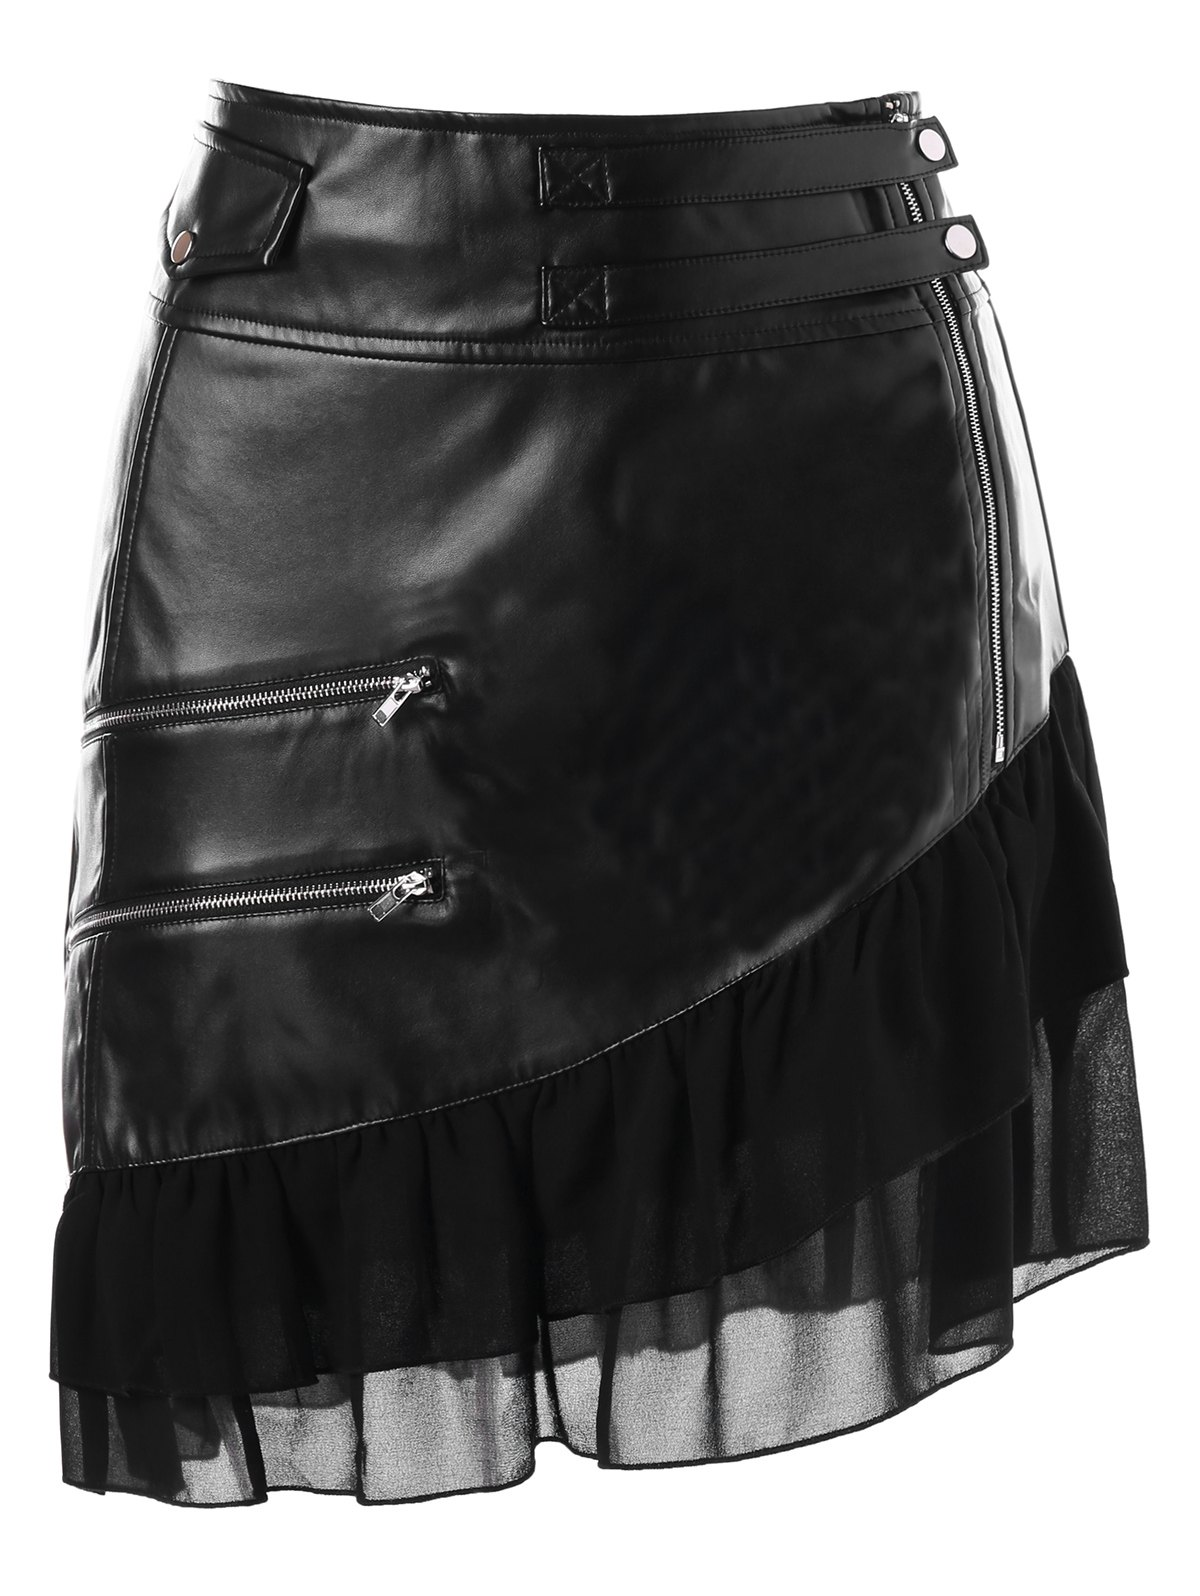 Faux Leather Zipper Flounce Panel Skirt - BLACK M